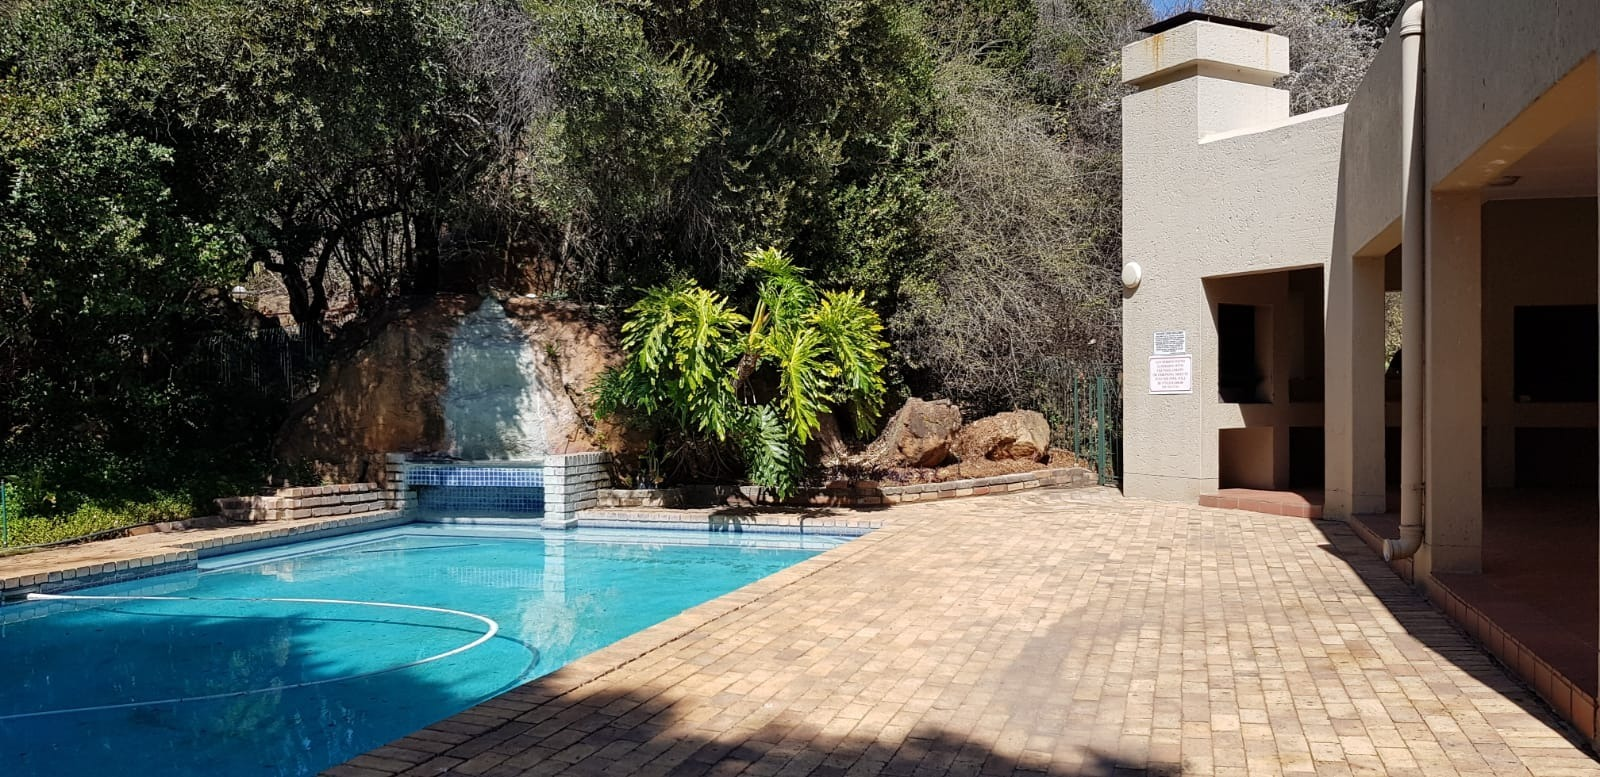 BEAUTIFUL ONE BED UNIT IN BRYANSTON!